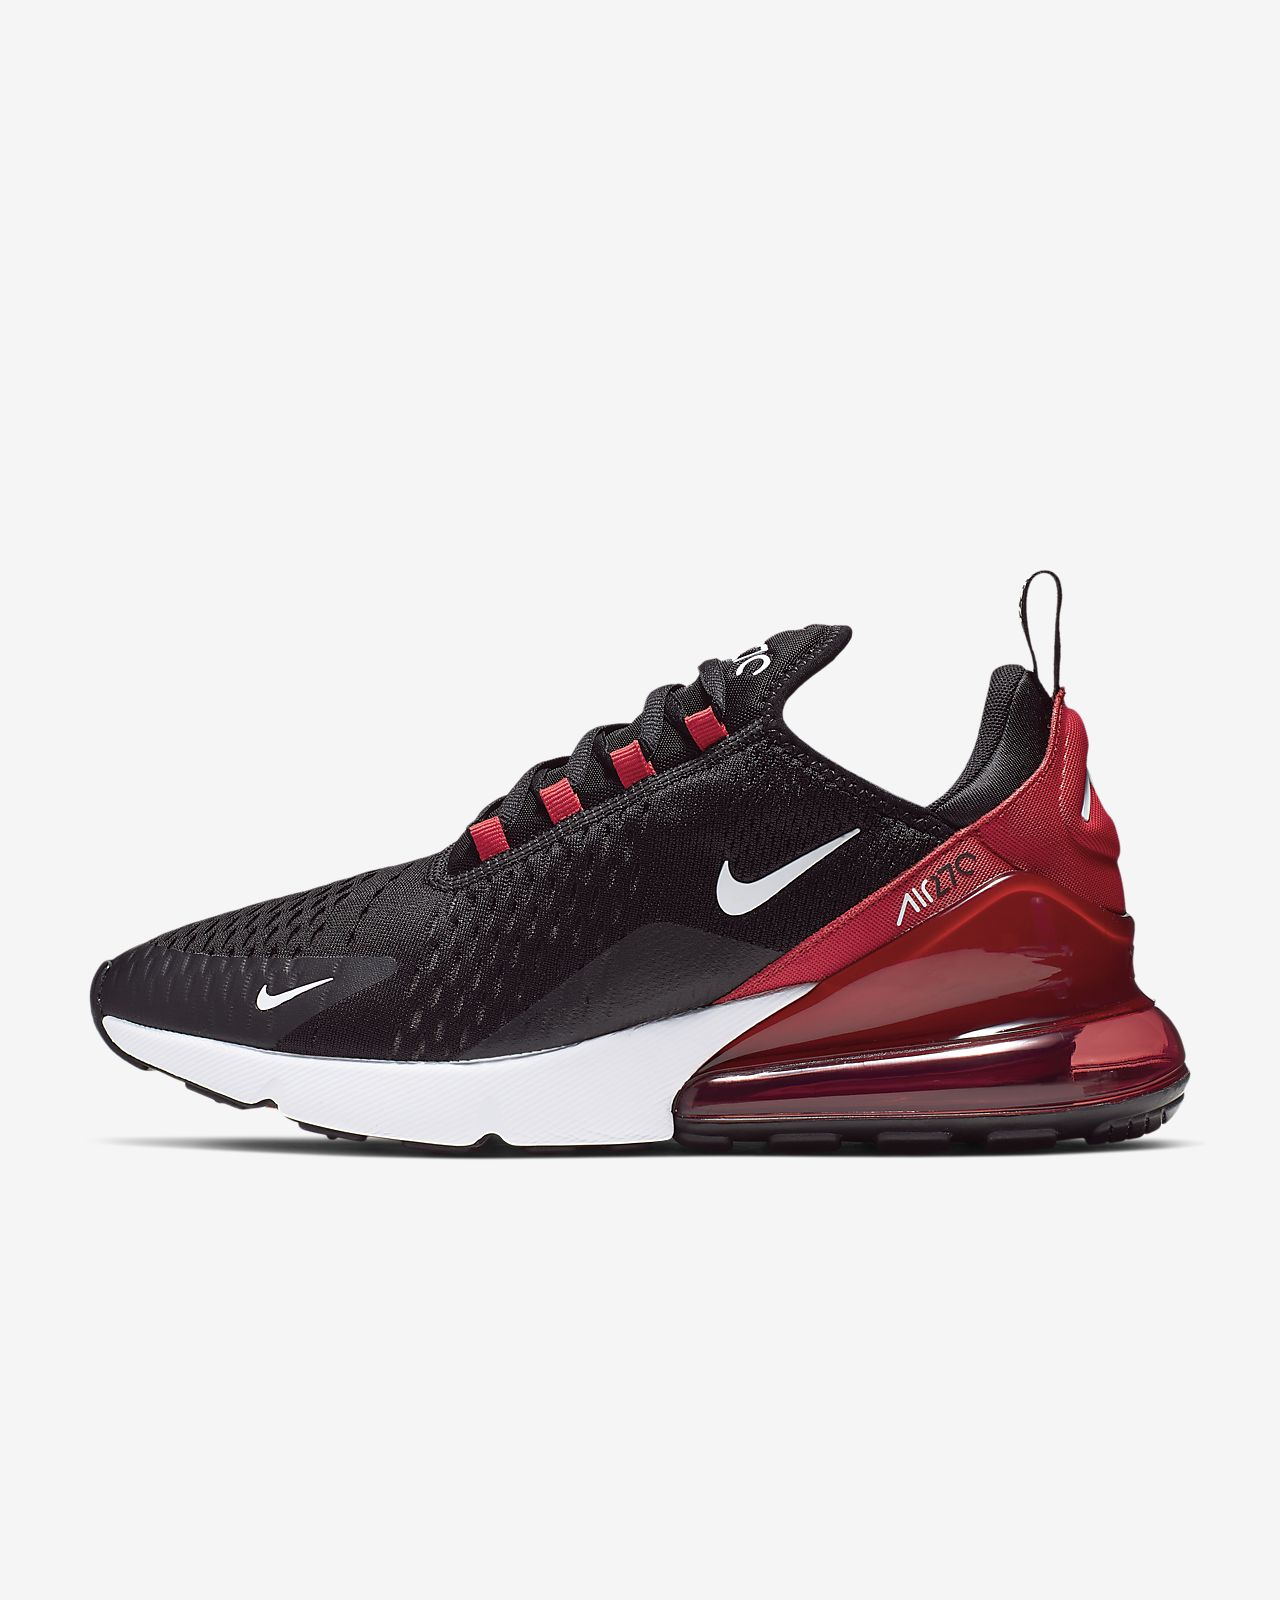 ba7732be893 Nike Air Max 270 Men s Shoe. Nike.com GB